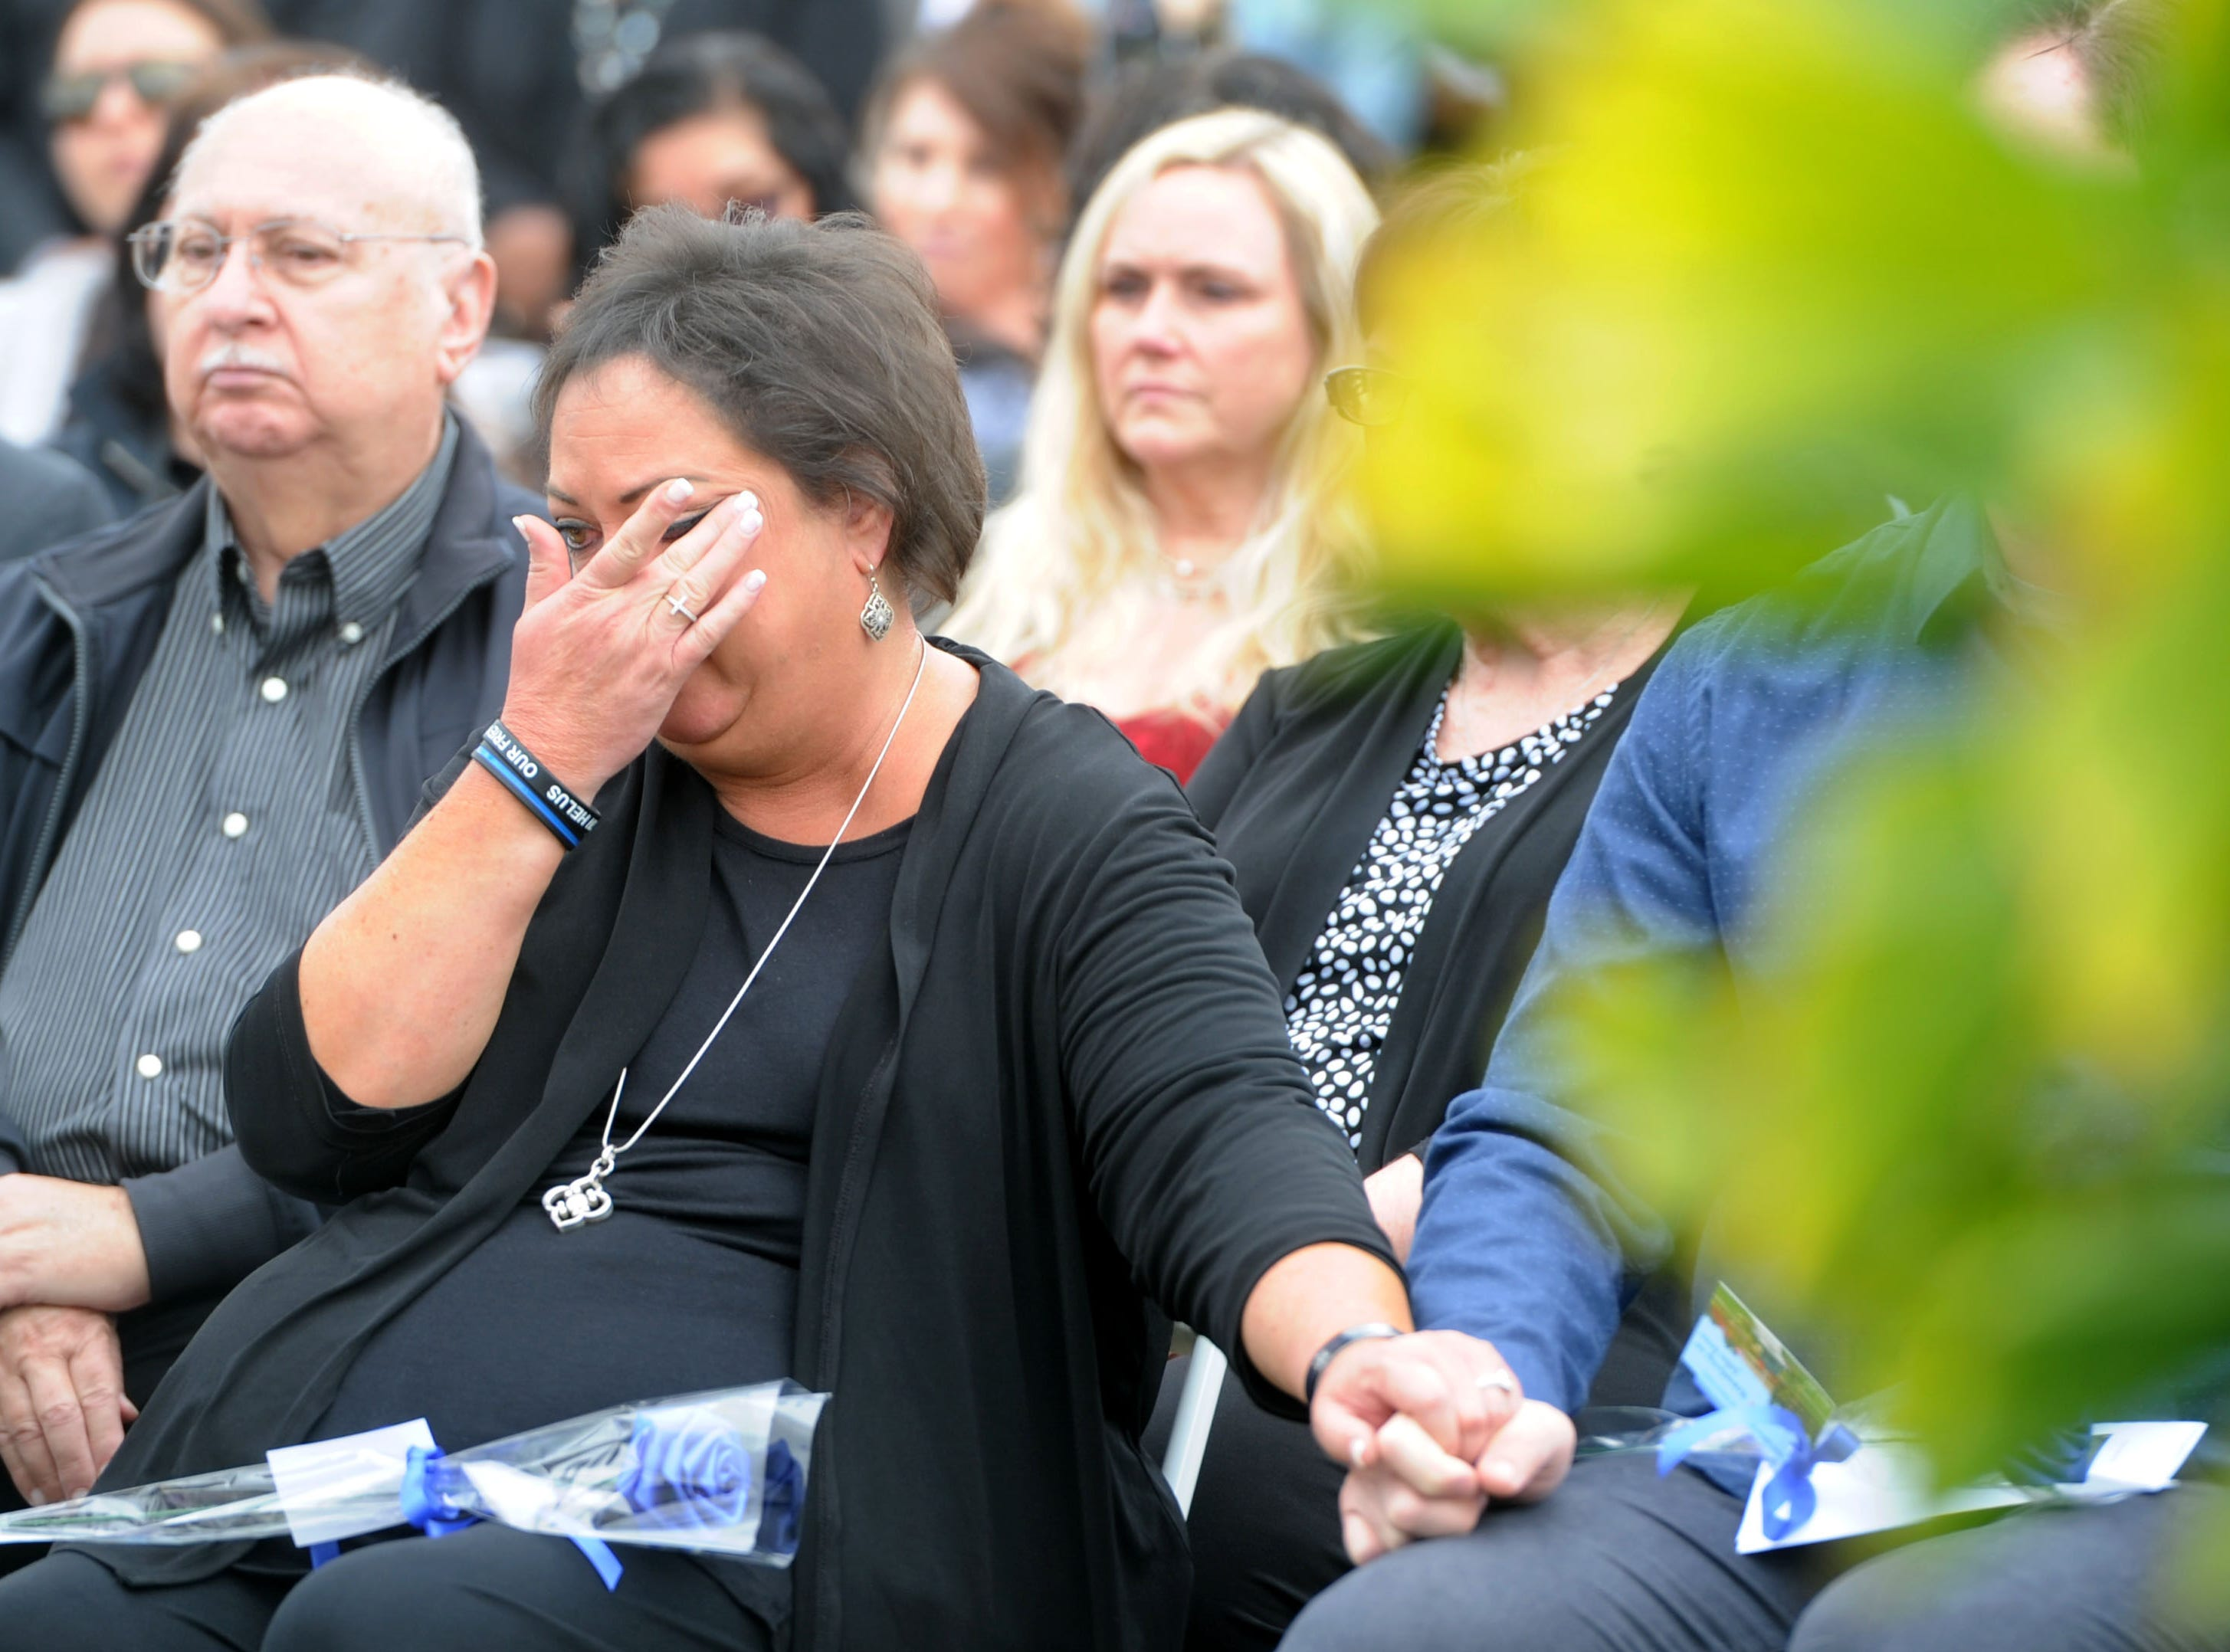 Sgt. Ron Helus' widow, Karen Helus, cries Thursday at the Ventura County Peace Officers Memorial at the Ventura County Government Center. The sergeant was one of those who died as a result of the mass shooting at the Borderline Bar & Grill in Thousand Oaks.